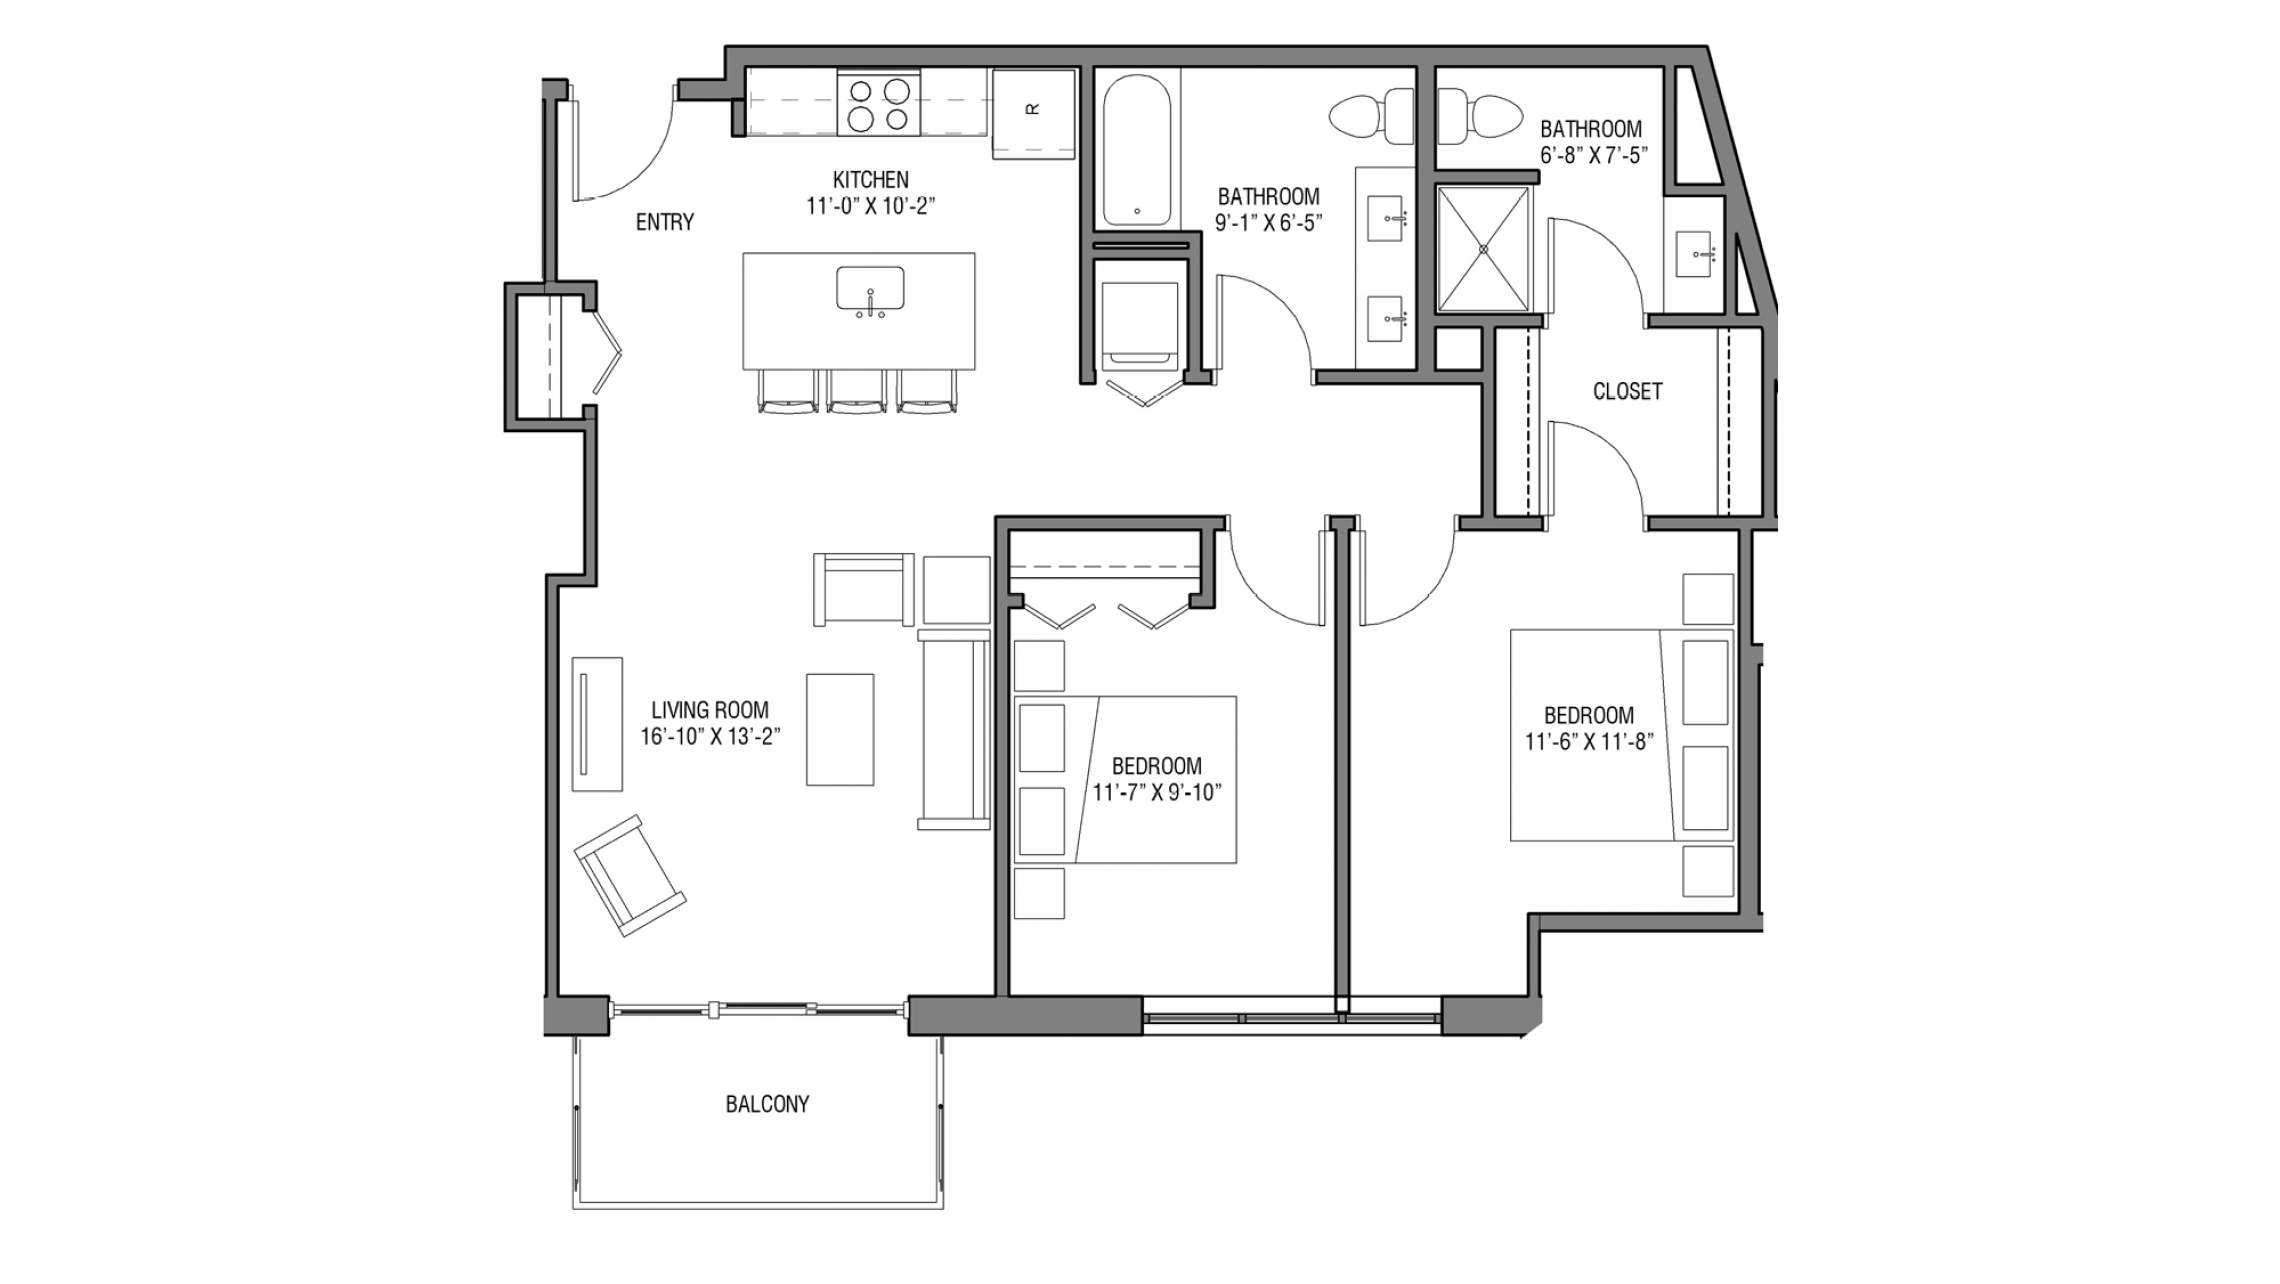 ULI Nine Line 515 - Two Bedroom, One Bathroom